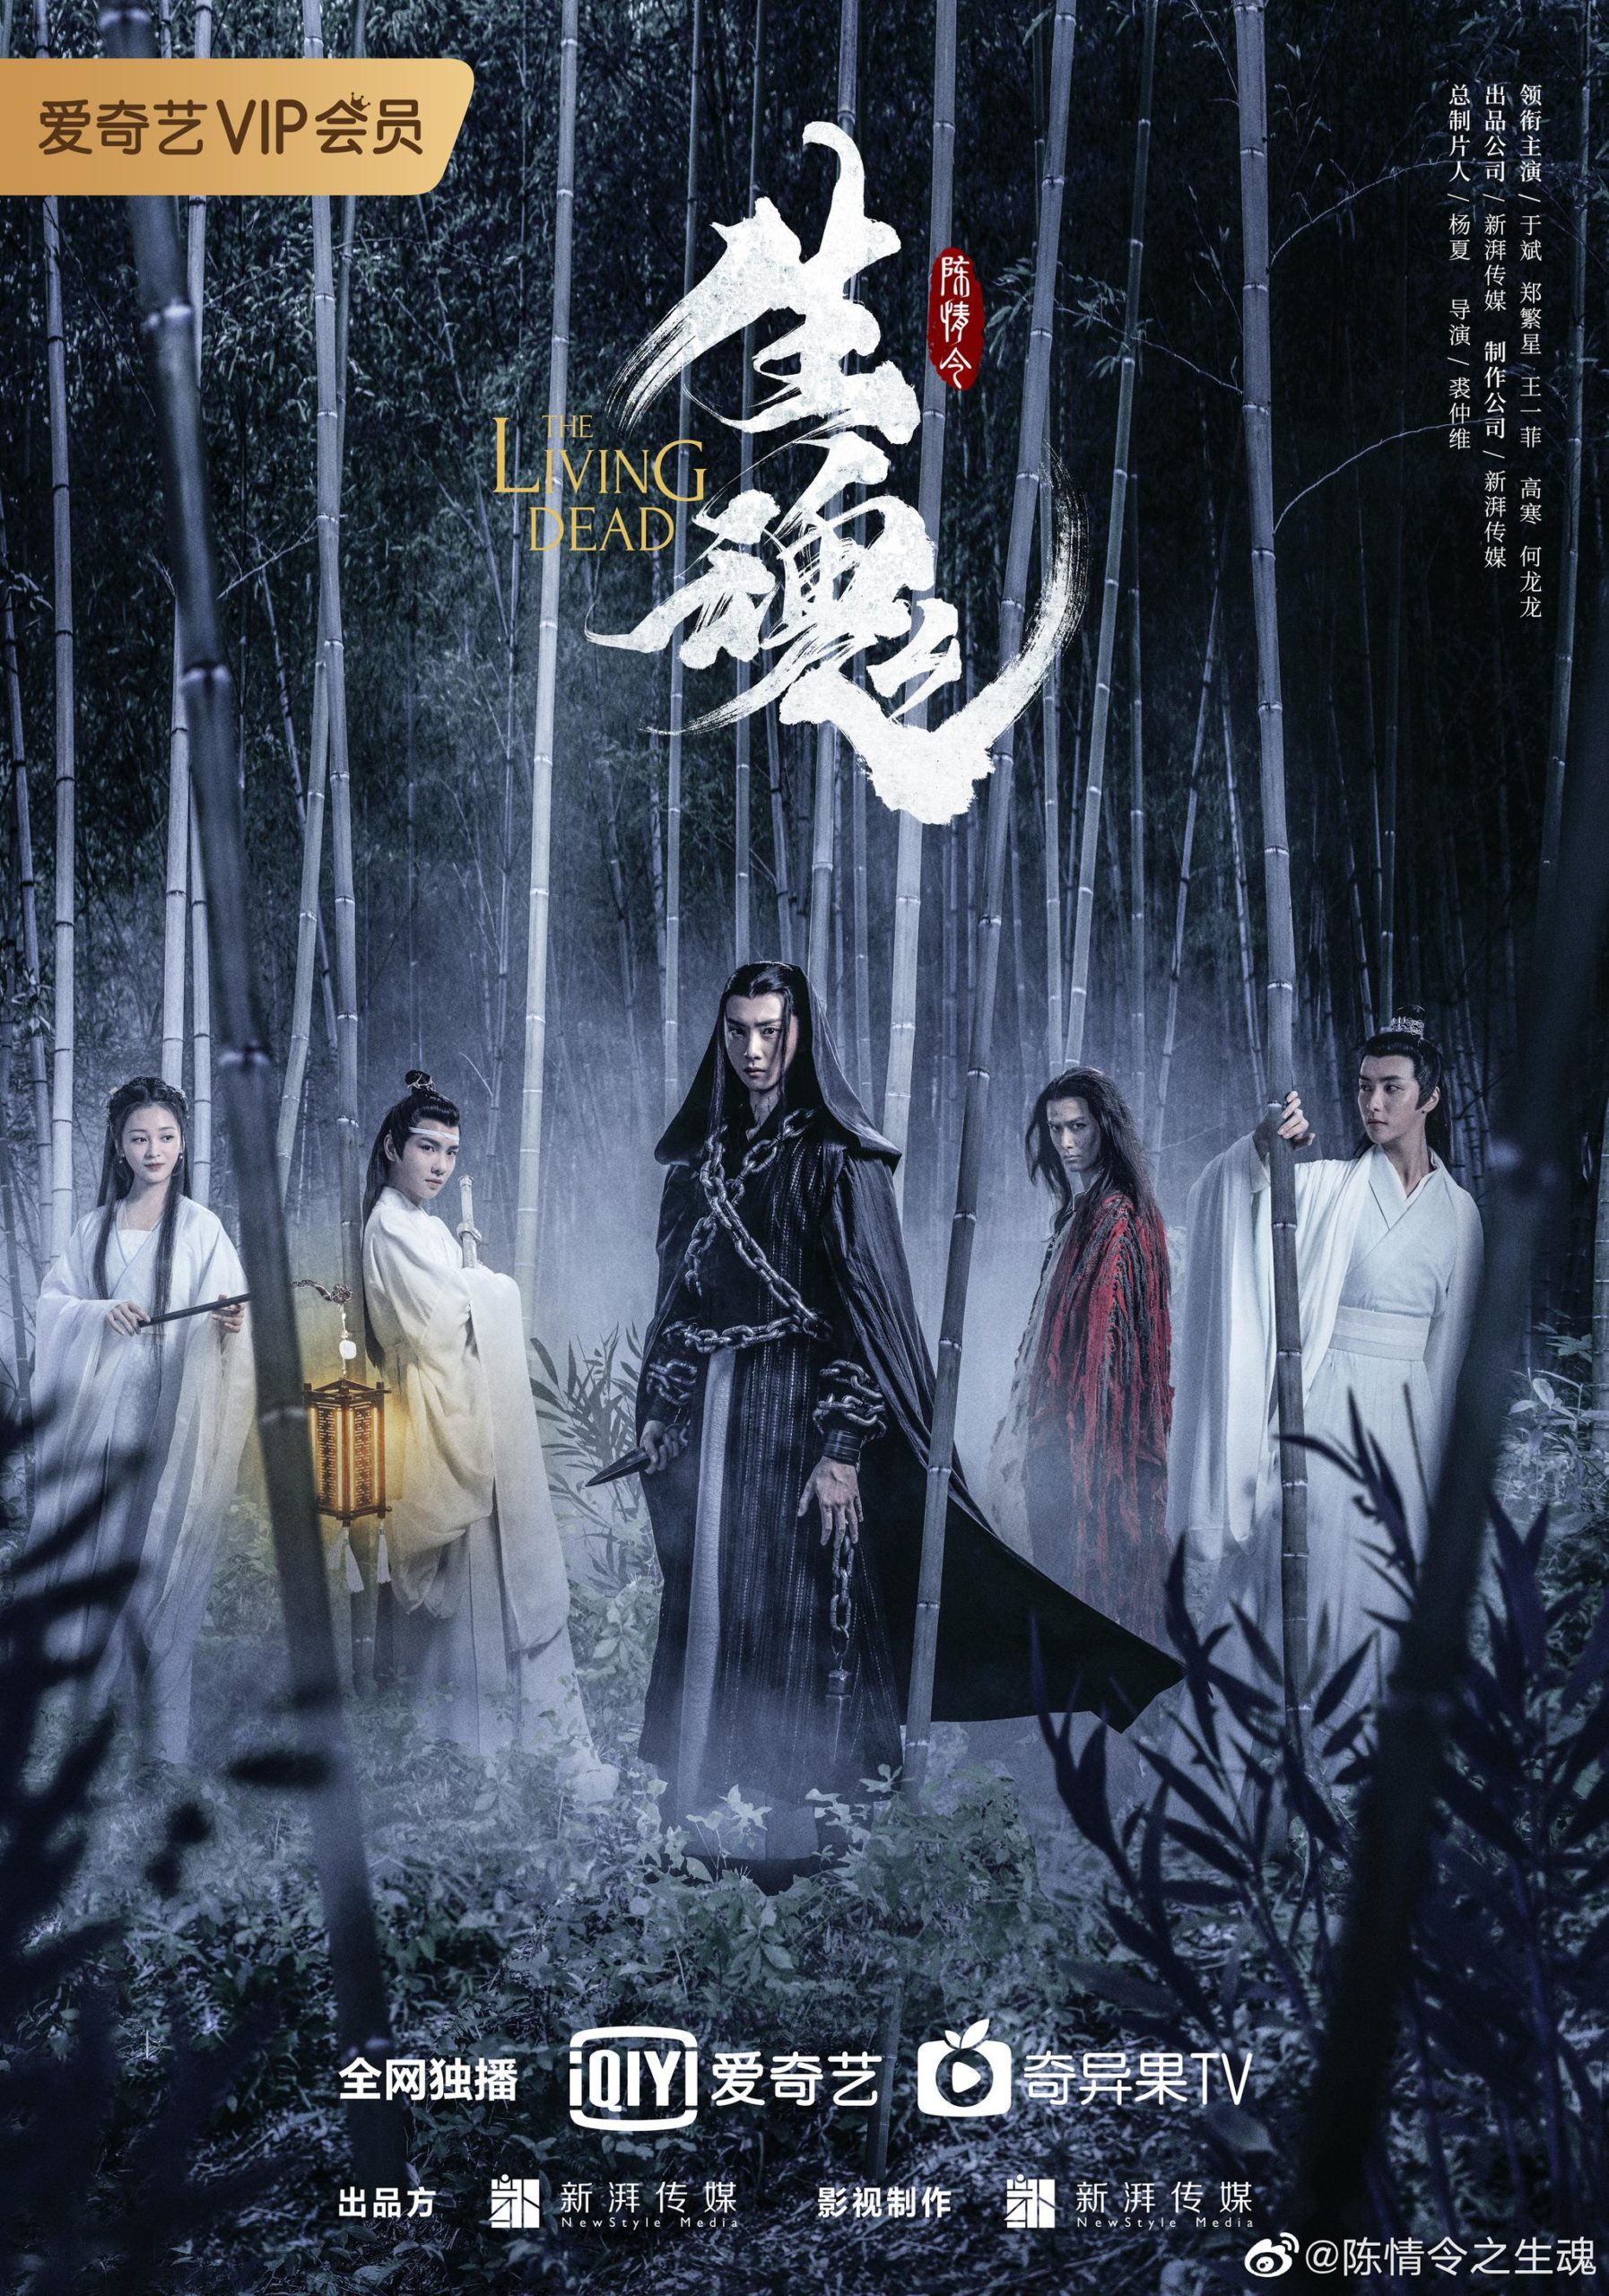 Watch Chinese Movie The Living Dead on OK Drama